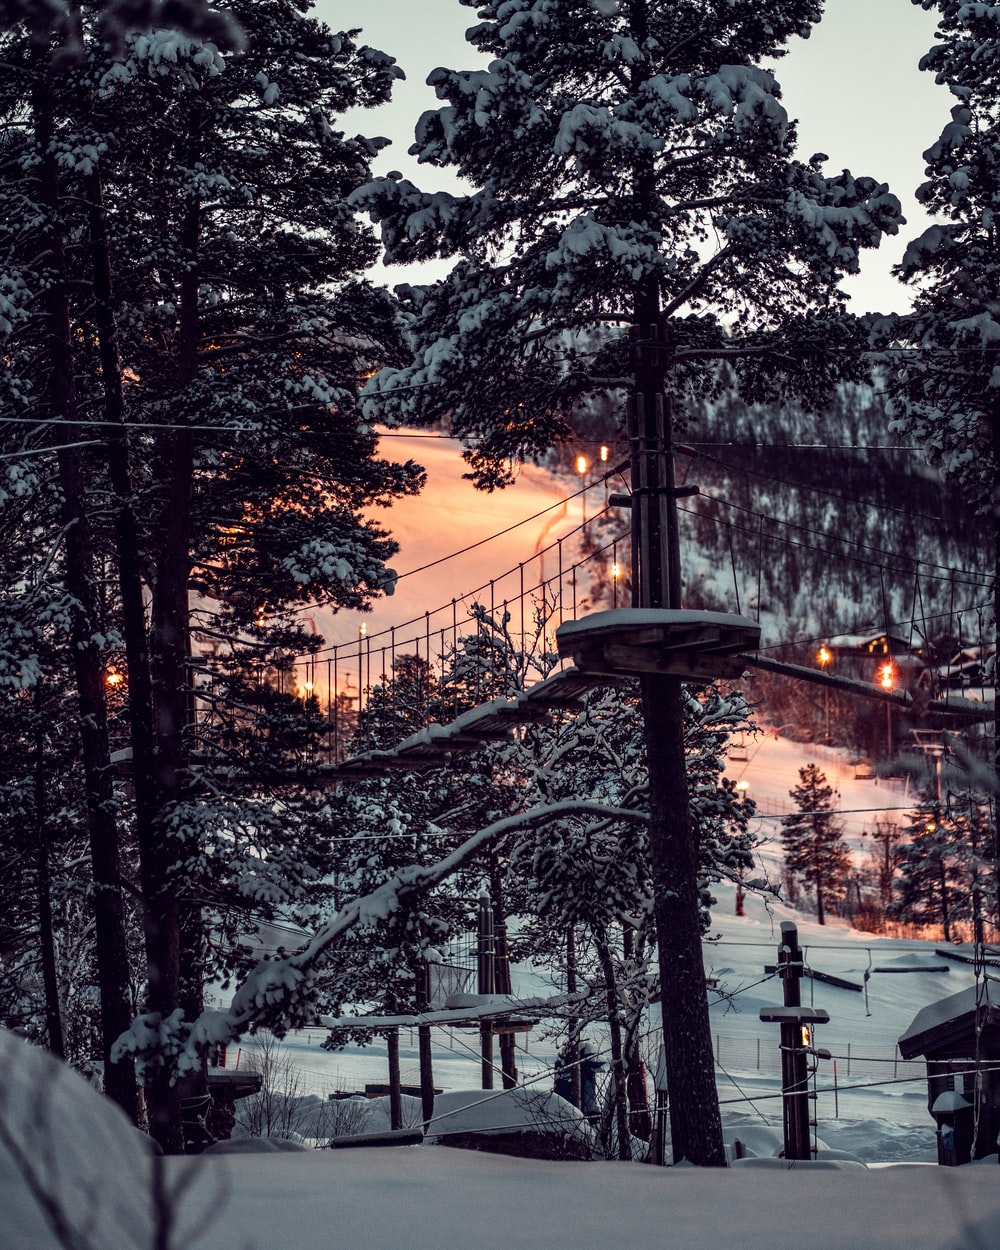 snow covered trees with bridges and houses